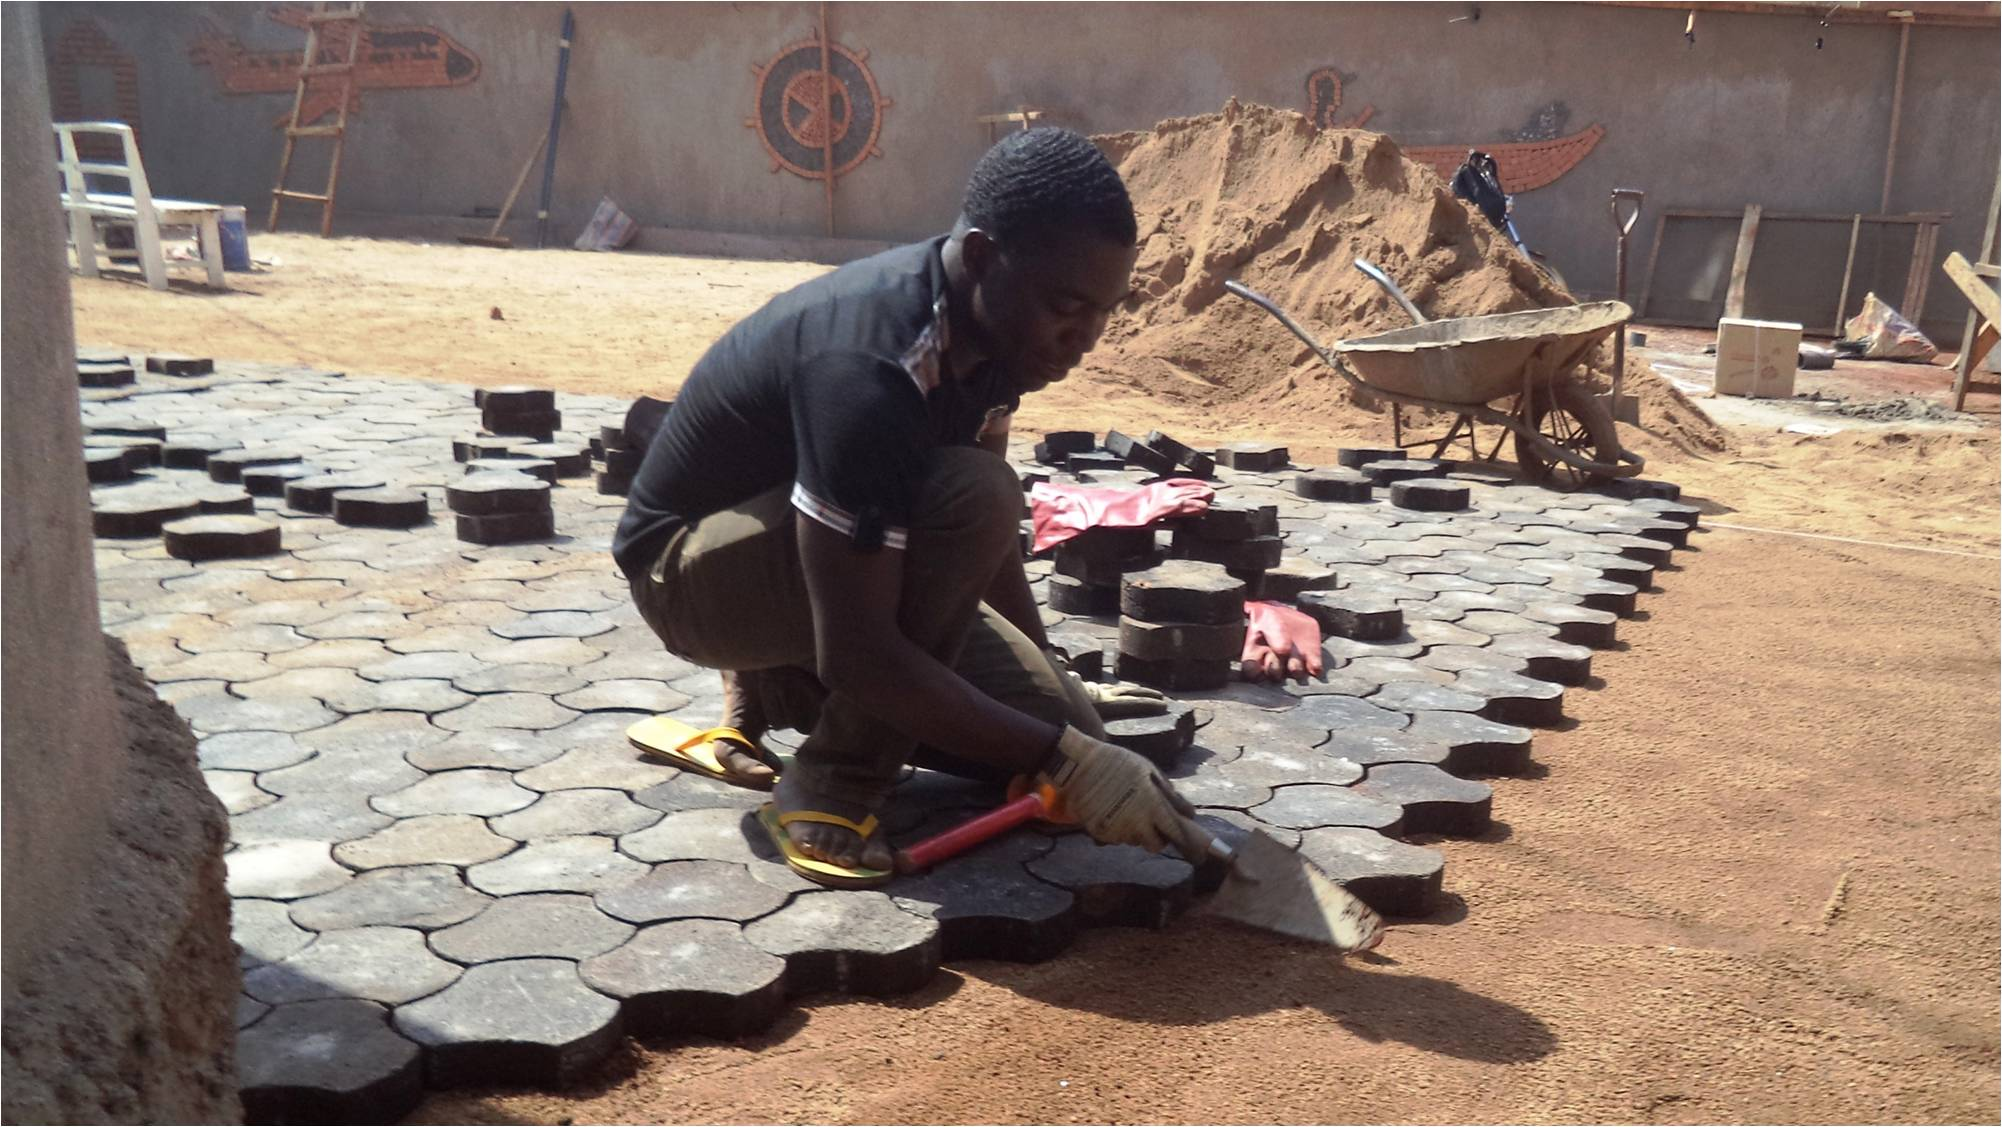 Research paper: How to recycle plastic waste into paving